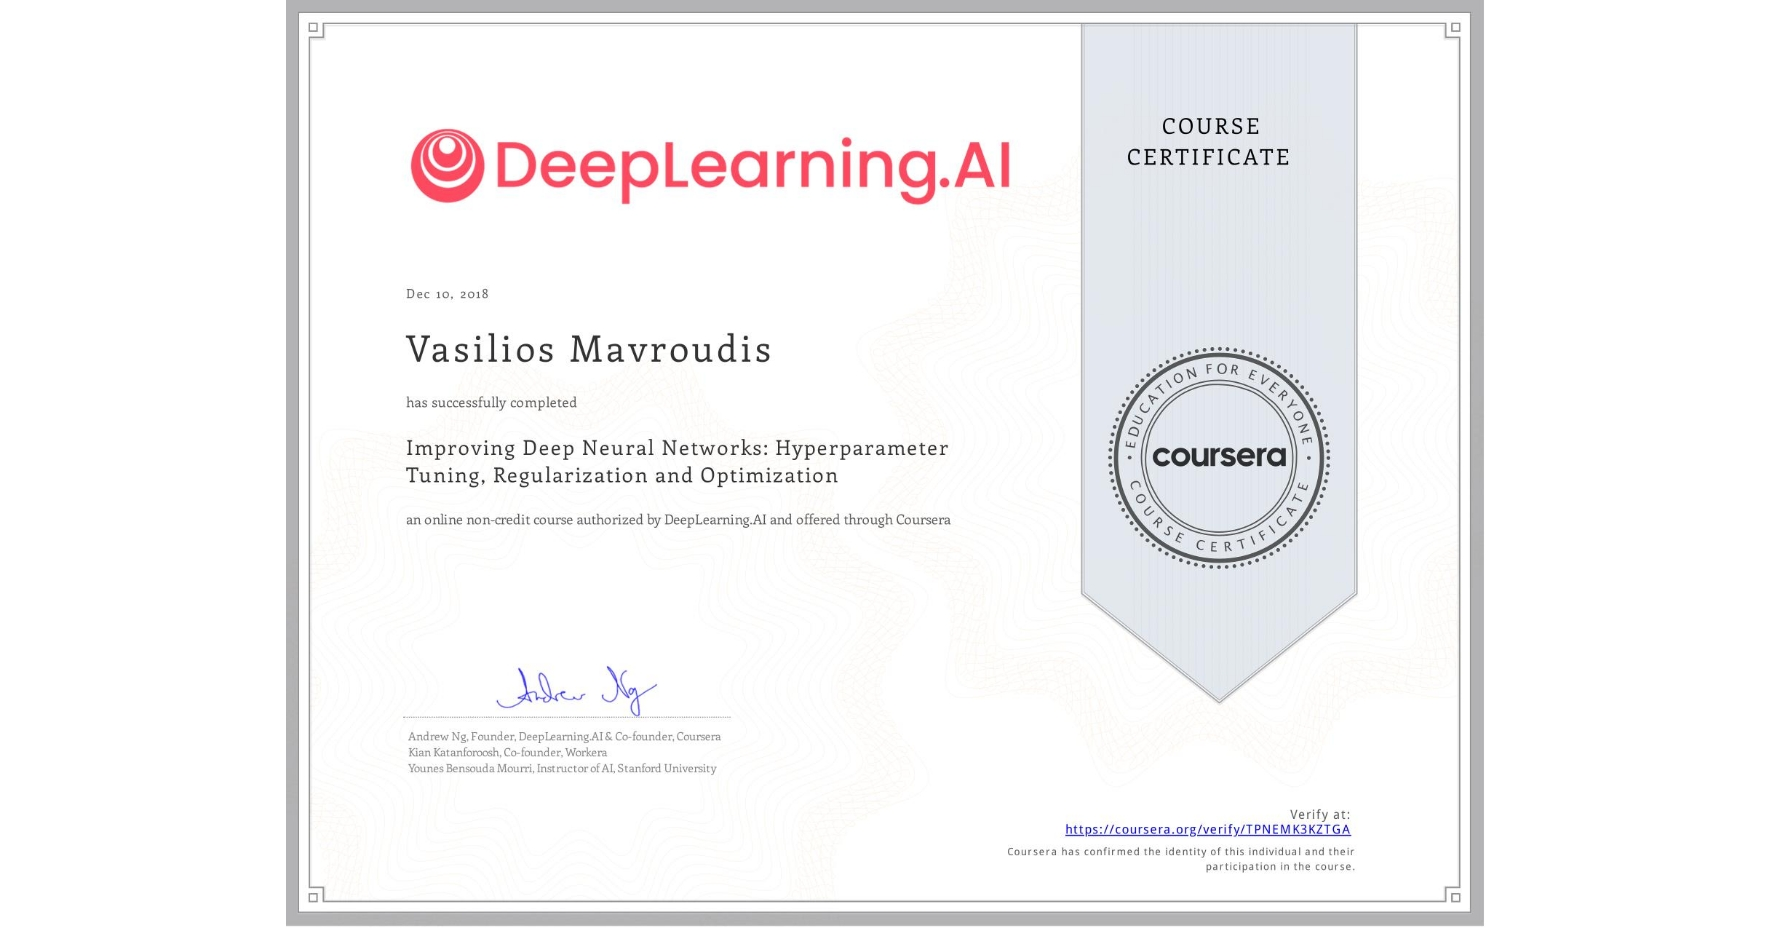 View certificate for Vasilios Mavroudis, Improving Deep Neural Networks: Hyperparameter tuning, Regularization and Optimization, an online non-credit course authorized by DeepLearning.AI and offered through Coursera